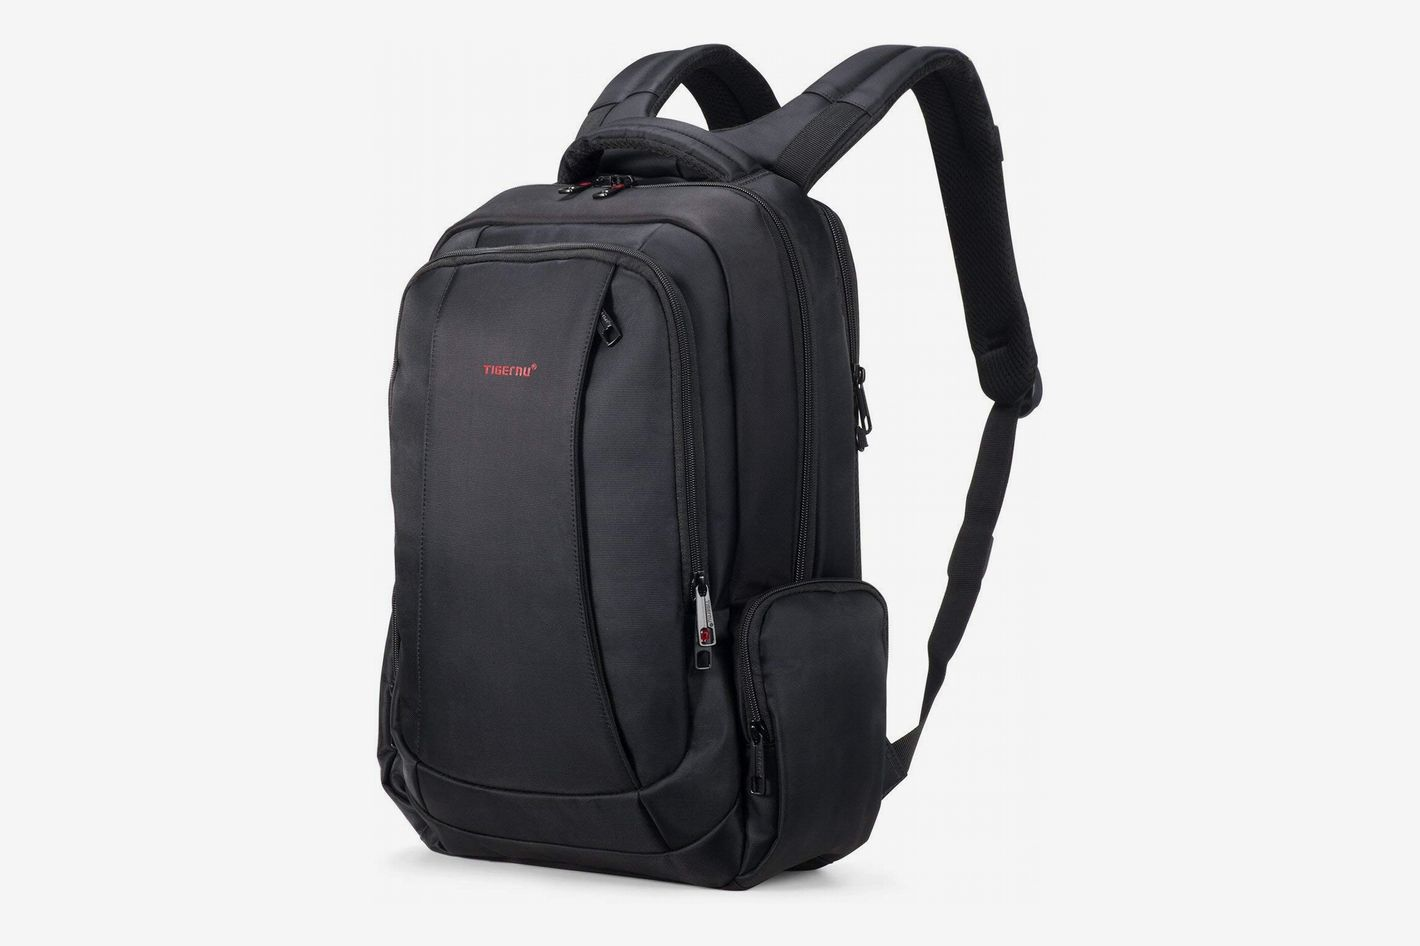 87e5ff4c35 Uoobag Tigernu Series Business Laptop Backpack